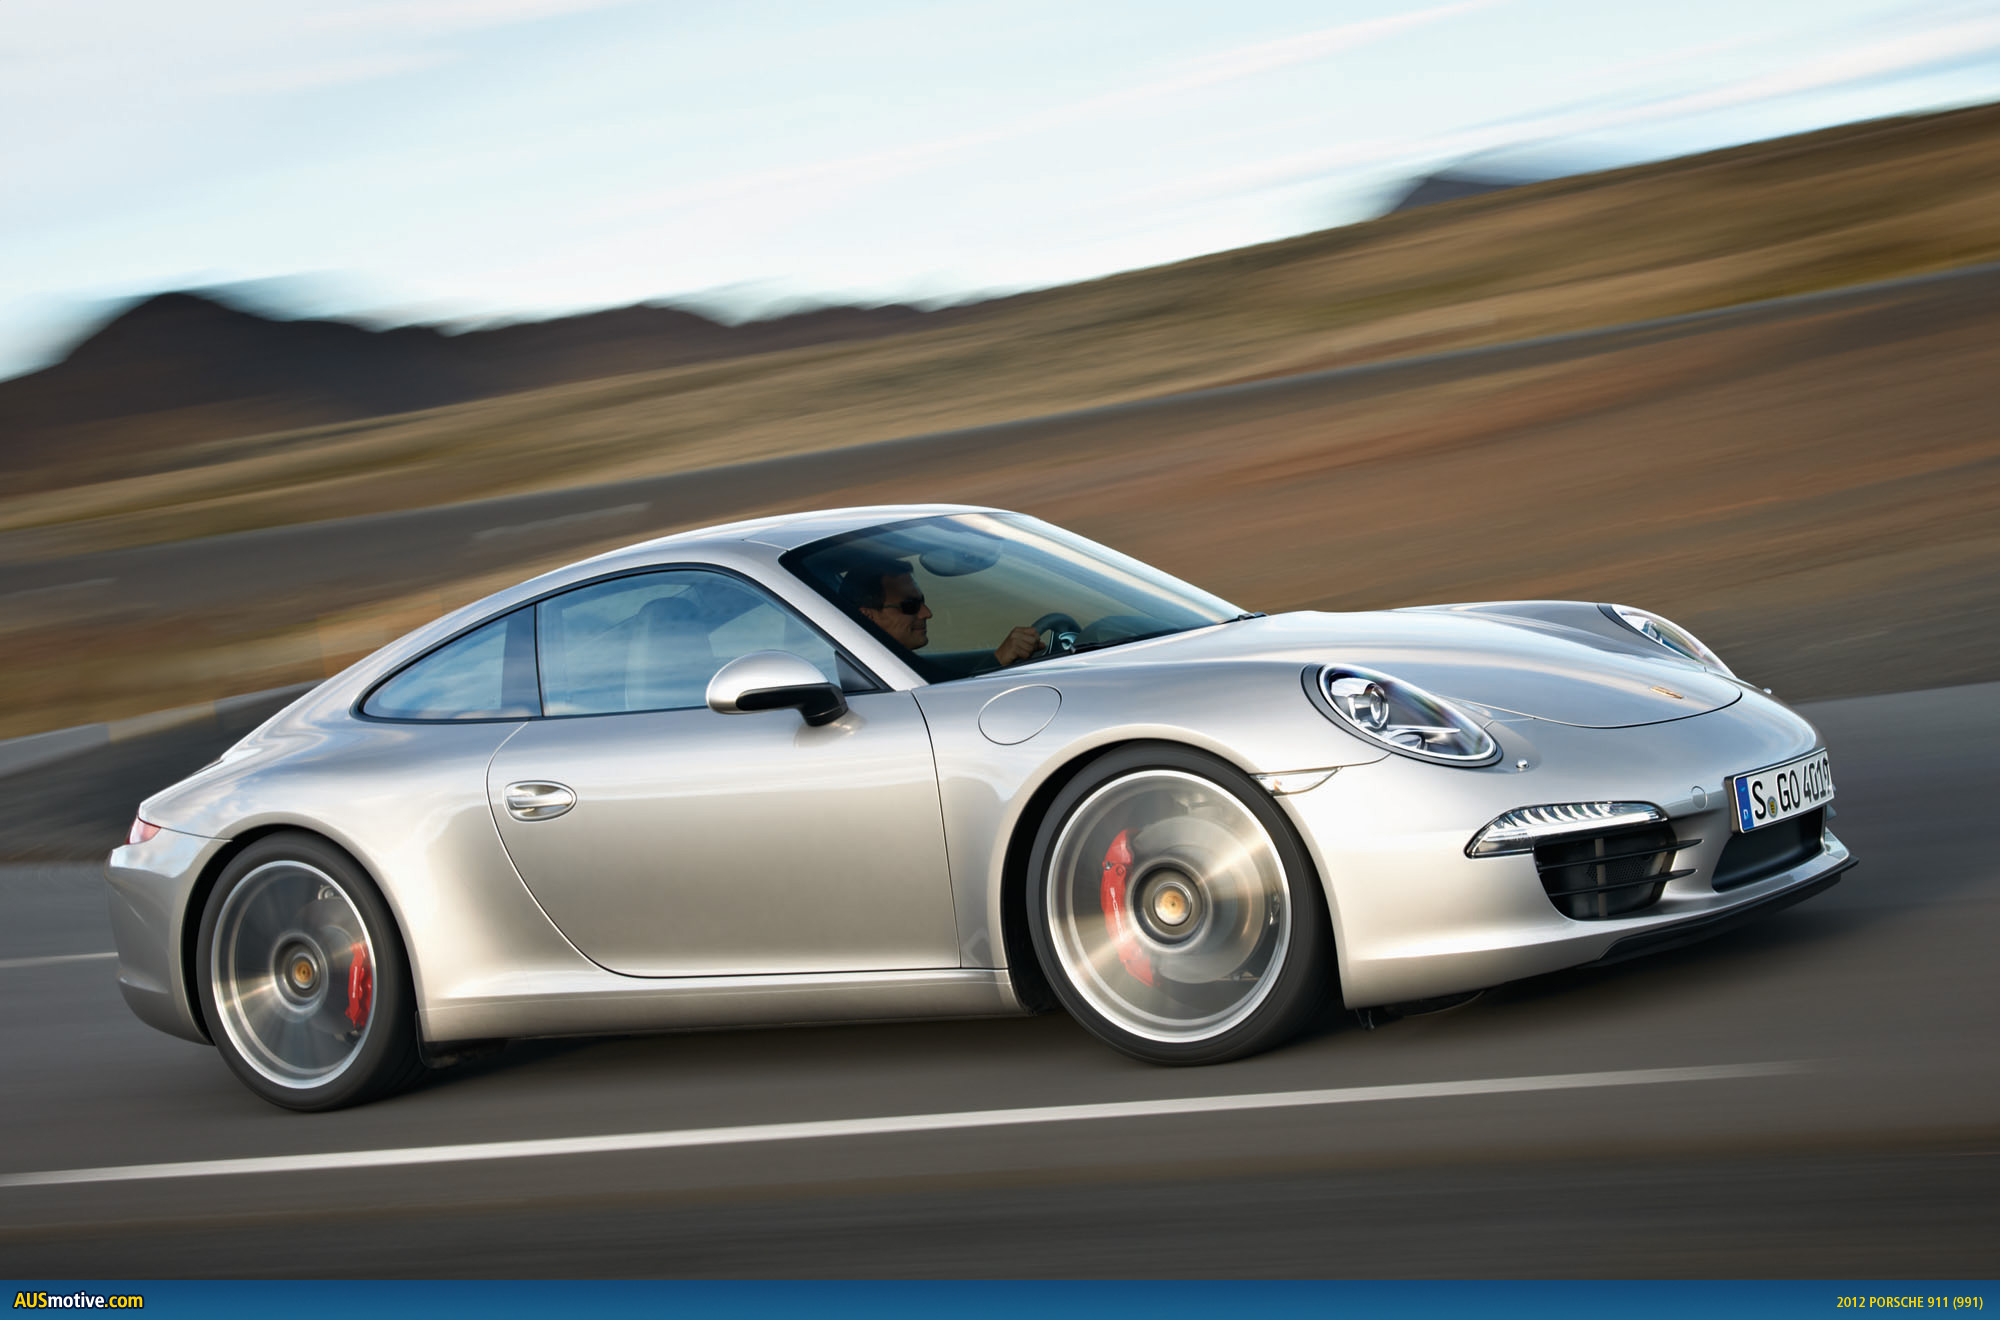 Porsche 911 991 revealed exclusive Wallpaper Backgrounds